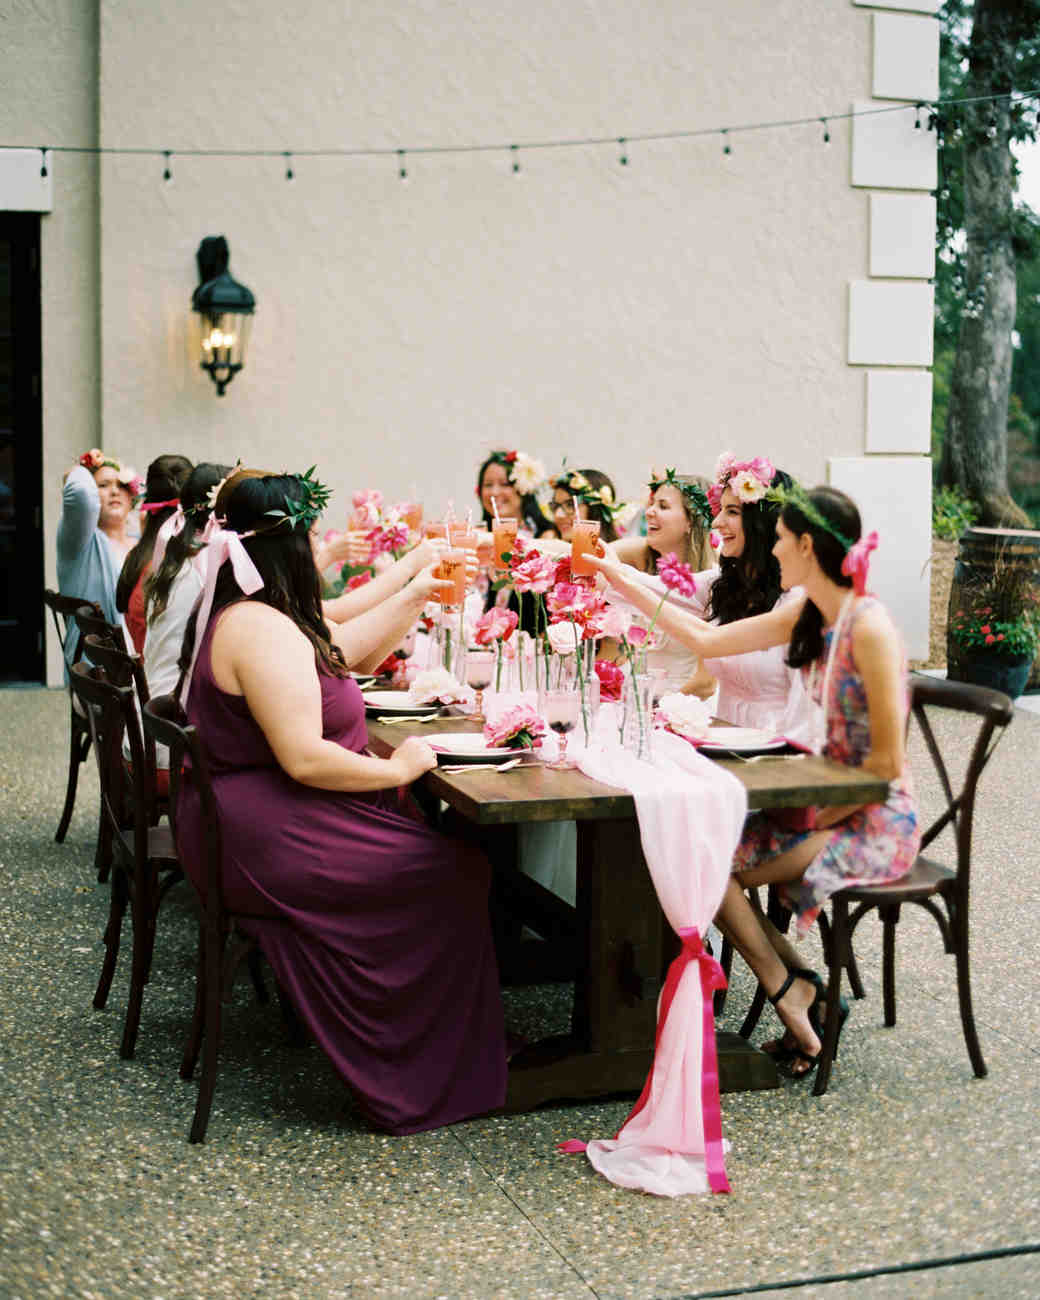 ee99c76bc3e5 How to Host a Last-Minute Bridal Shower